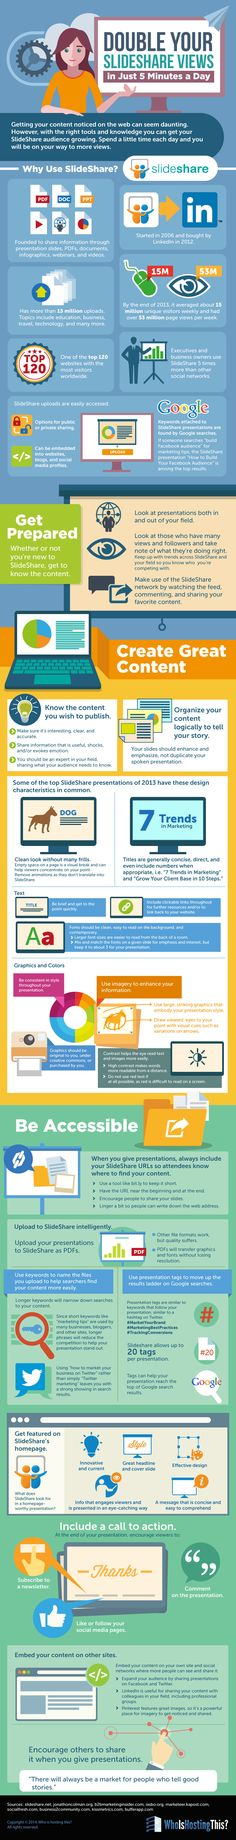 Infographic: Double Your SlideShare Views in Just 5 Minutes a Day